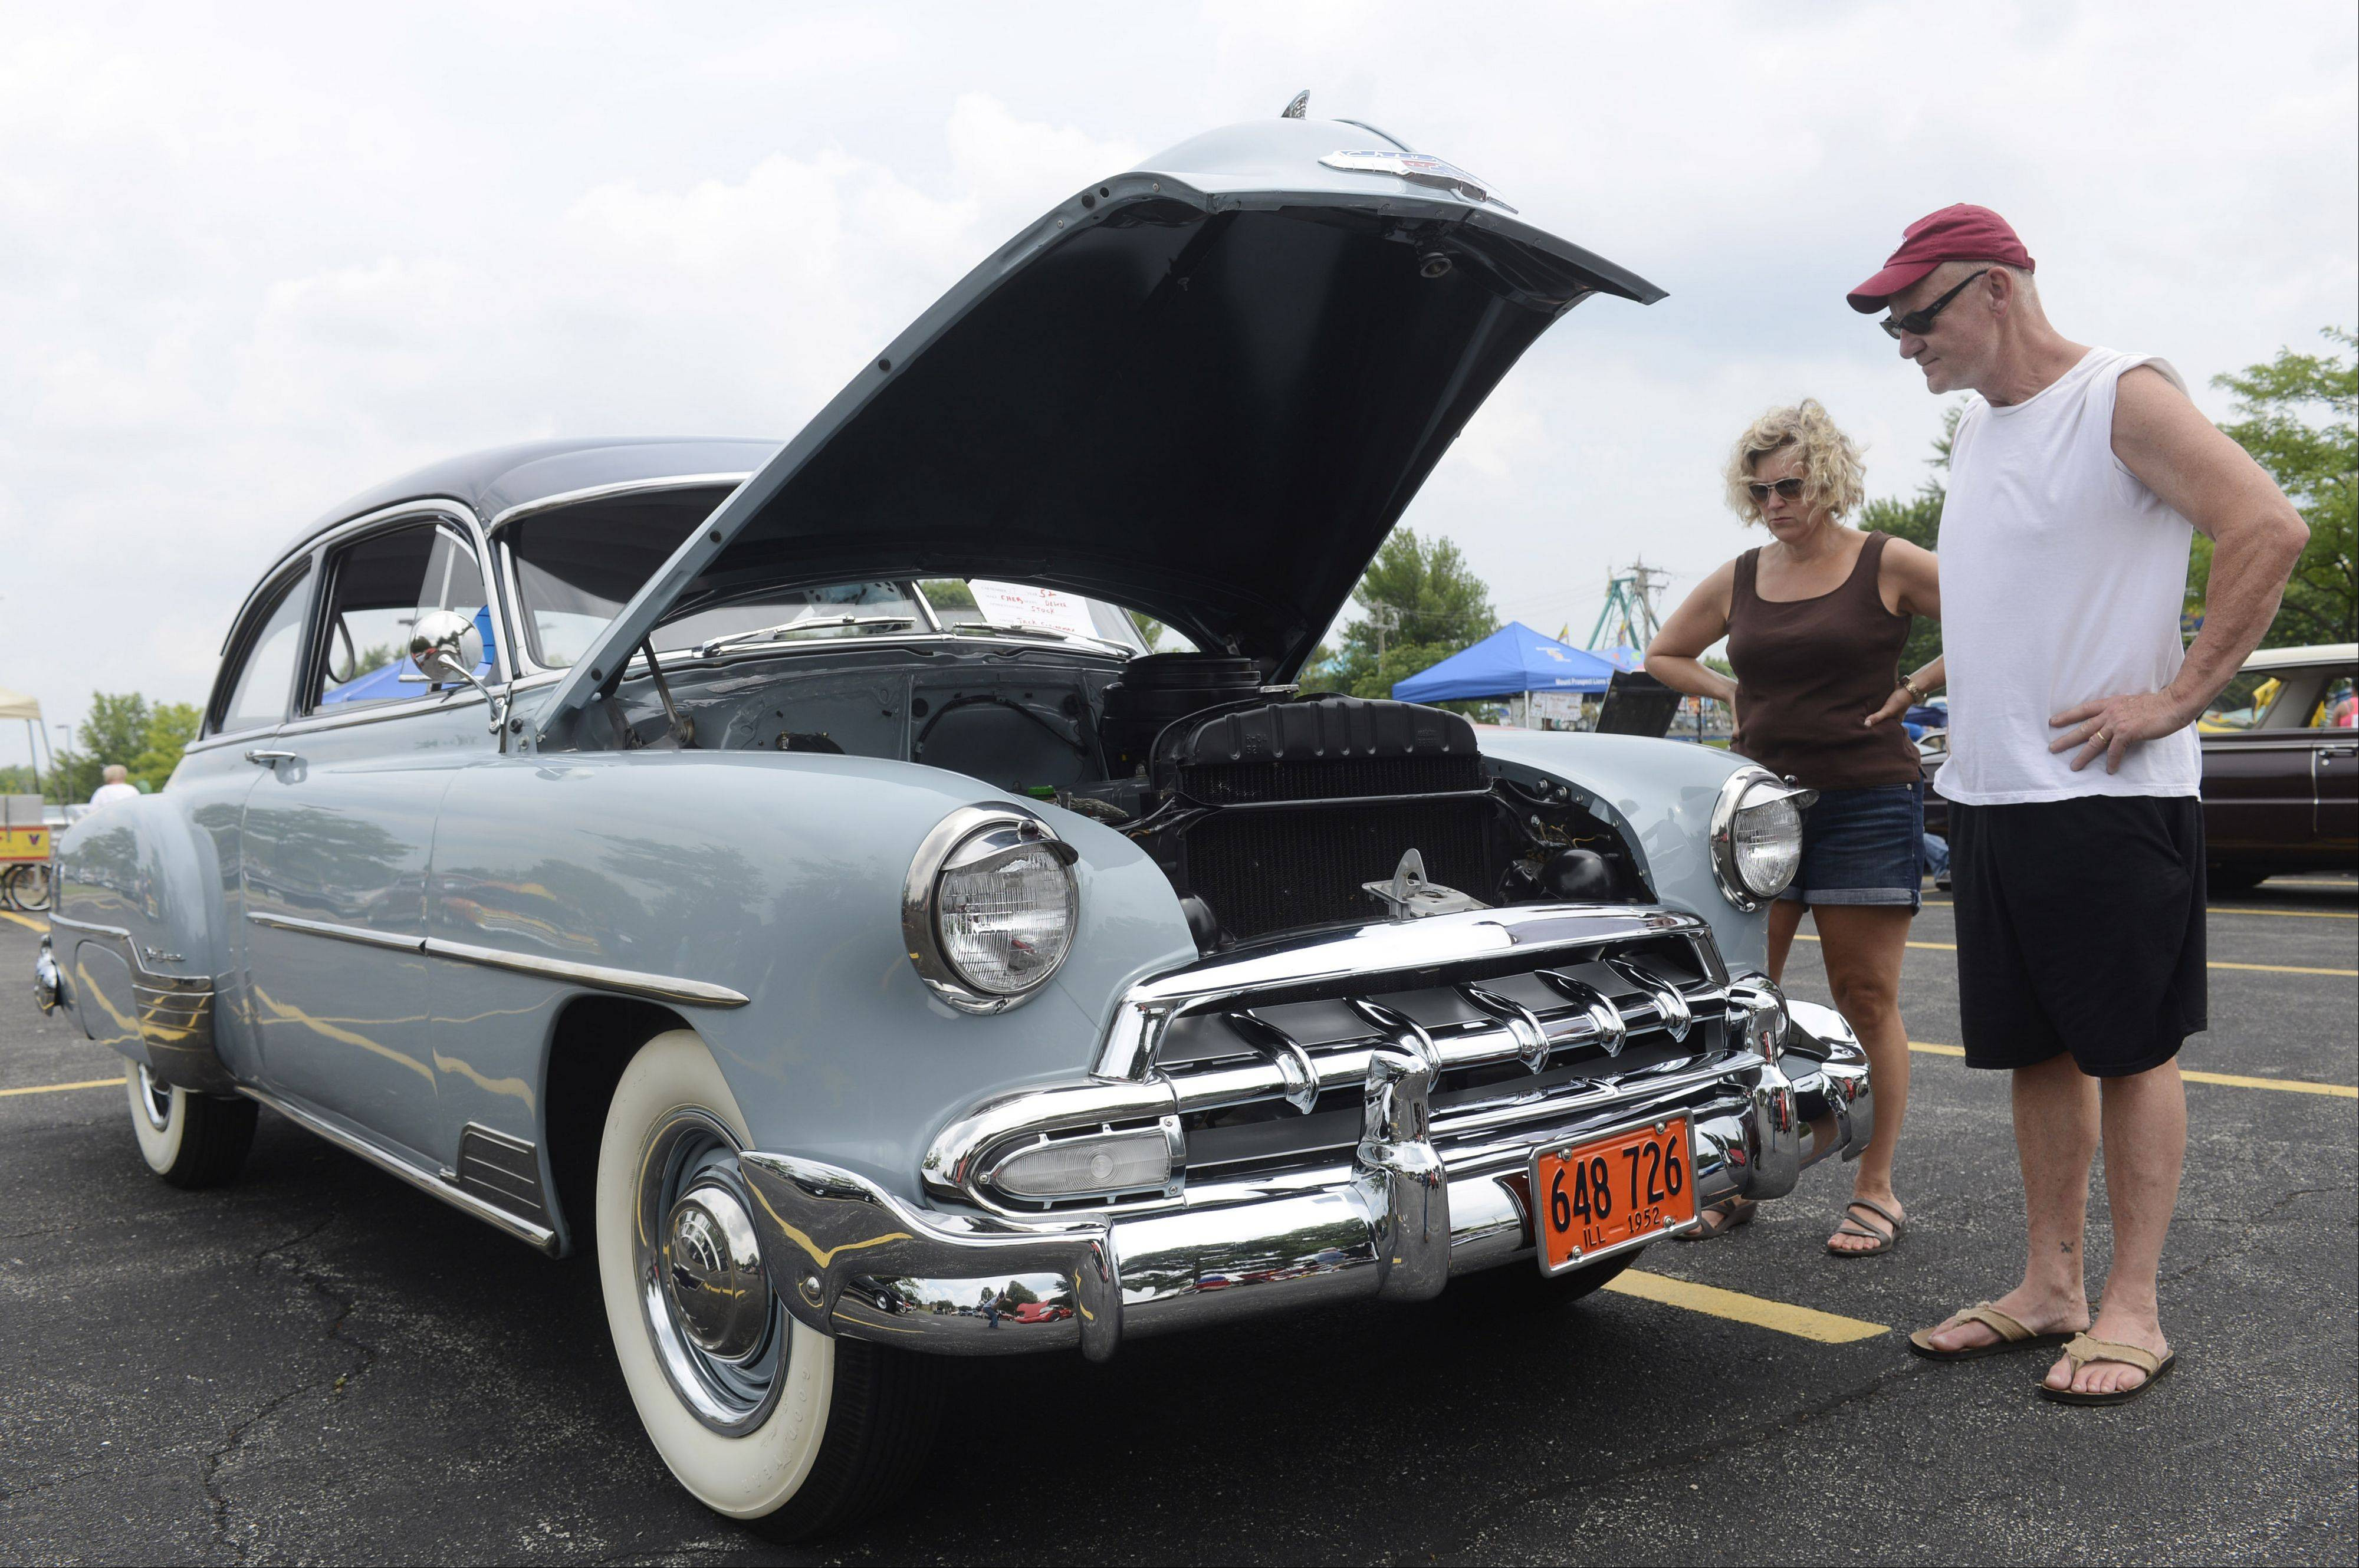 Susan and Bill Treece of Arlington Heights view a 1952 Chevy Deluxe displayed by car owner Jack Shippman during the Mount Prospect Lions Club Festival at Melas Park Saturday.